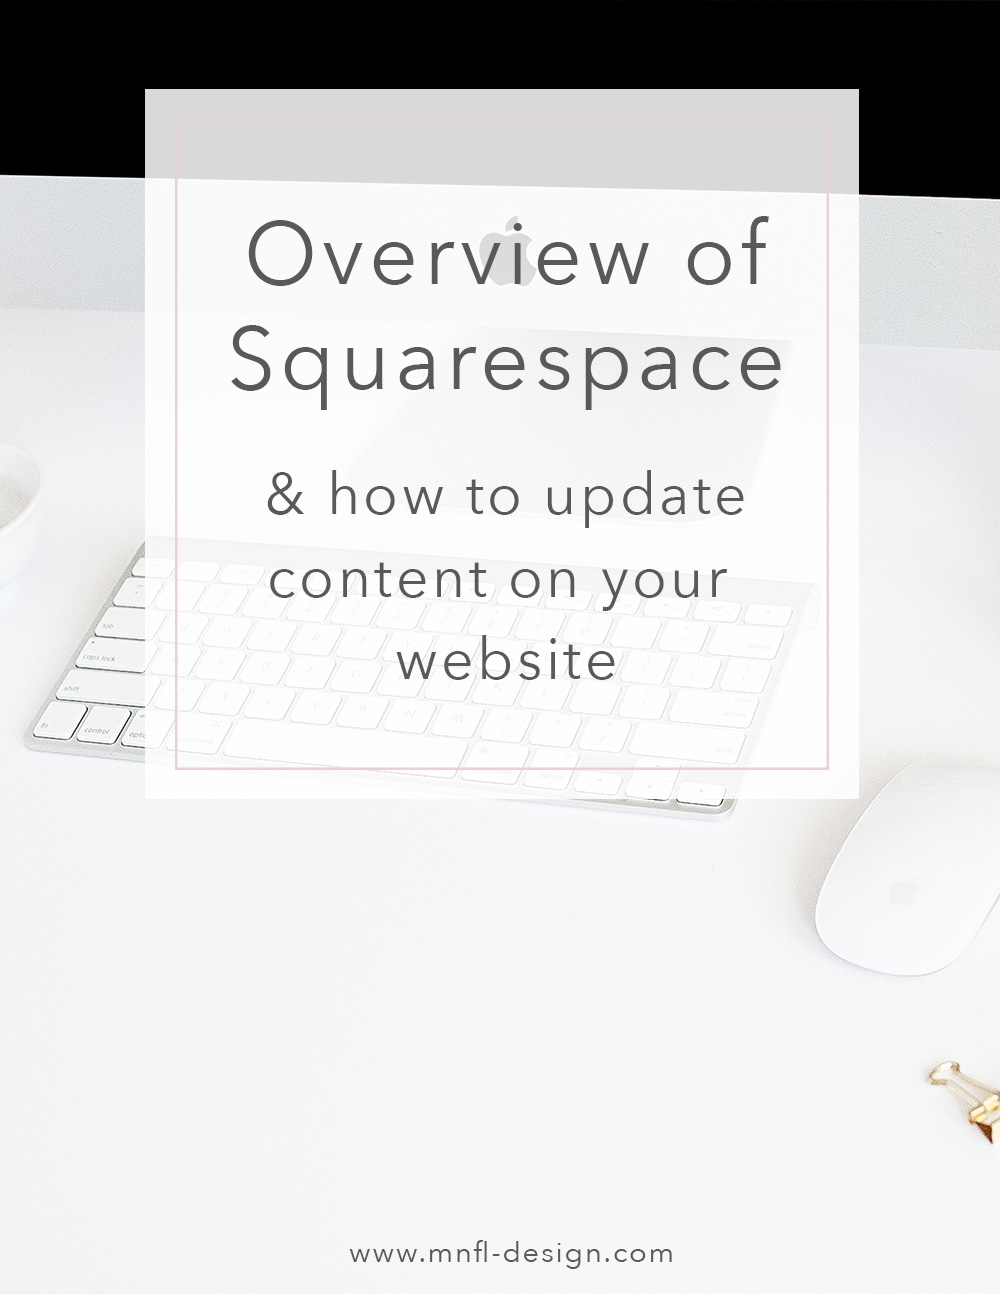 Overview of Squarespace and how to update content on your website   MNFL Design